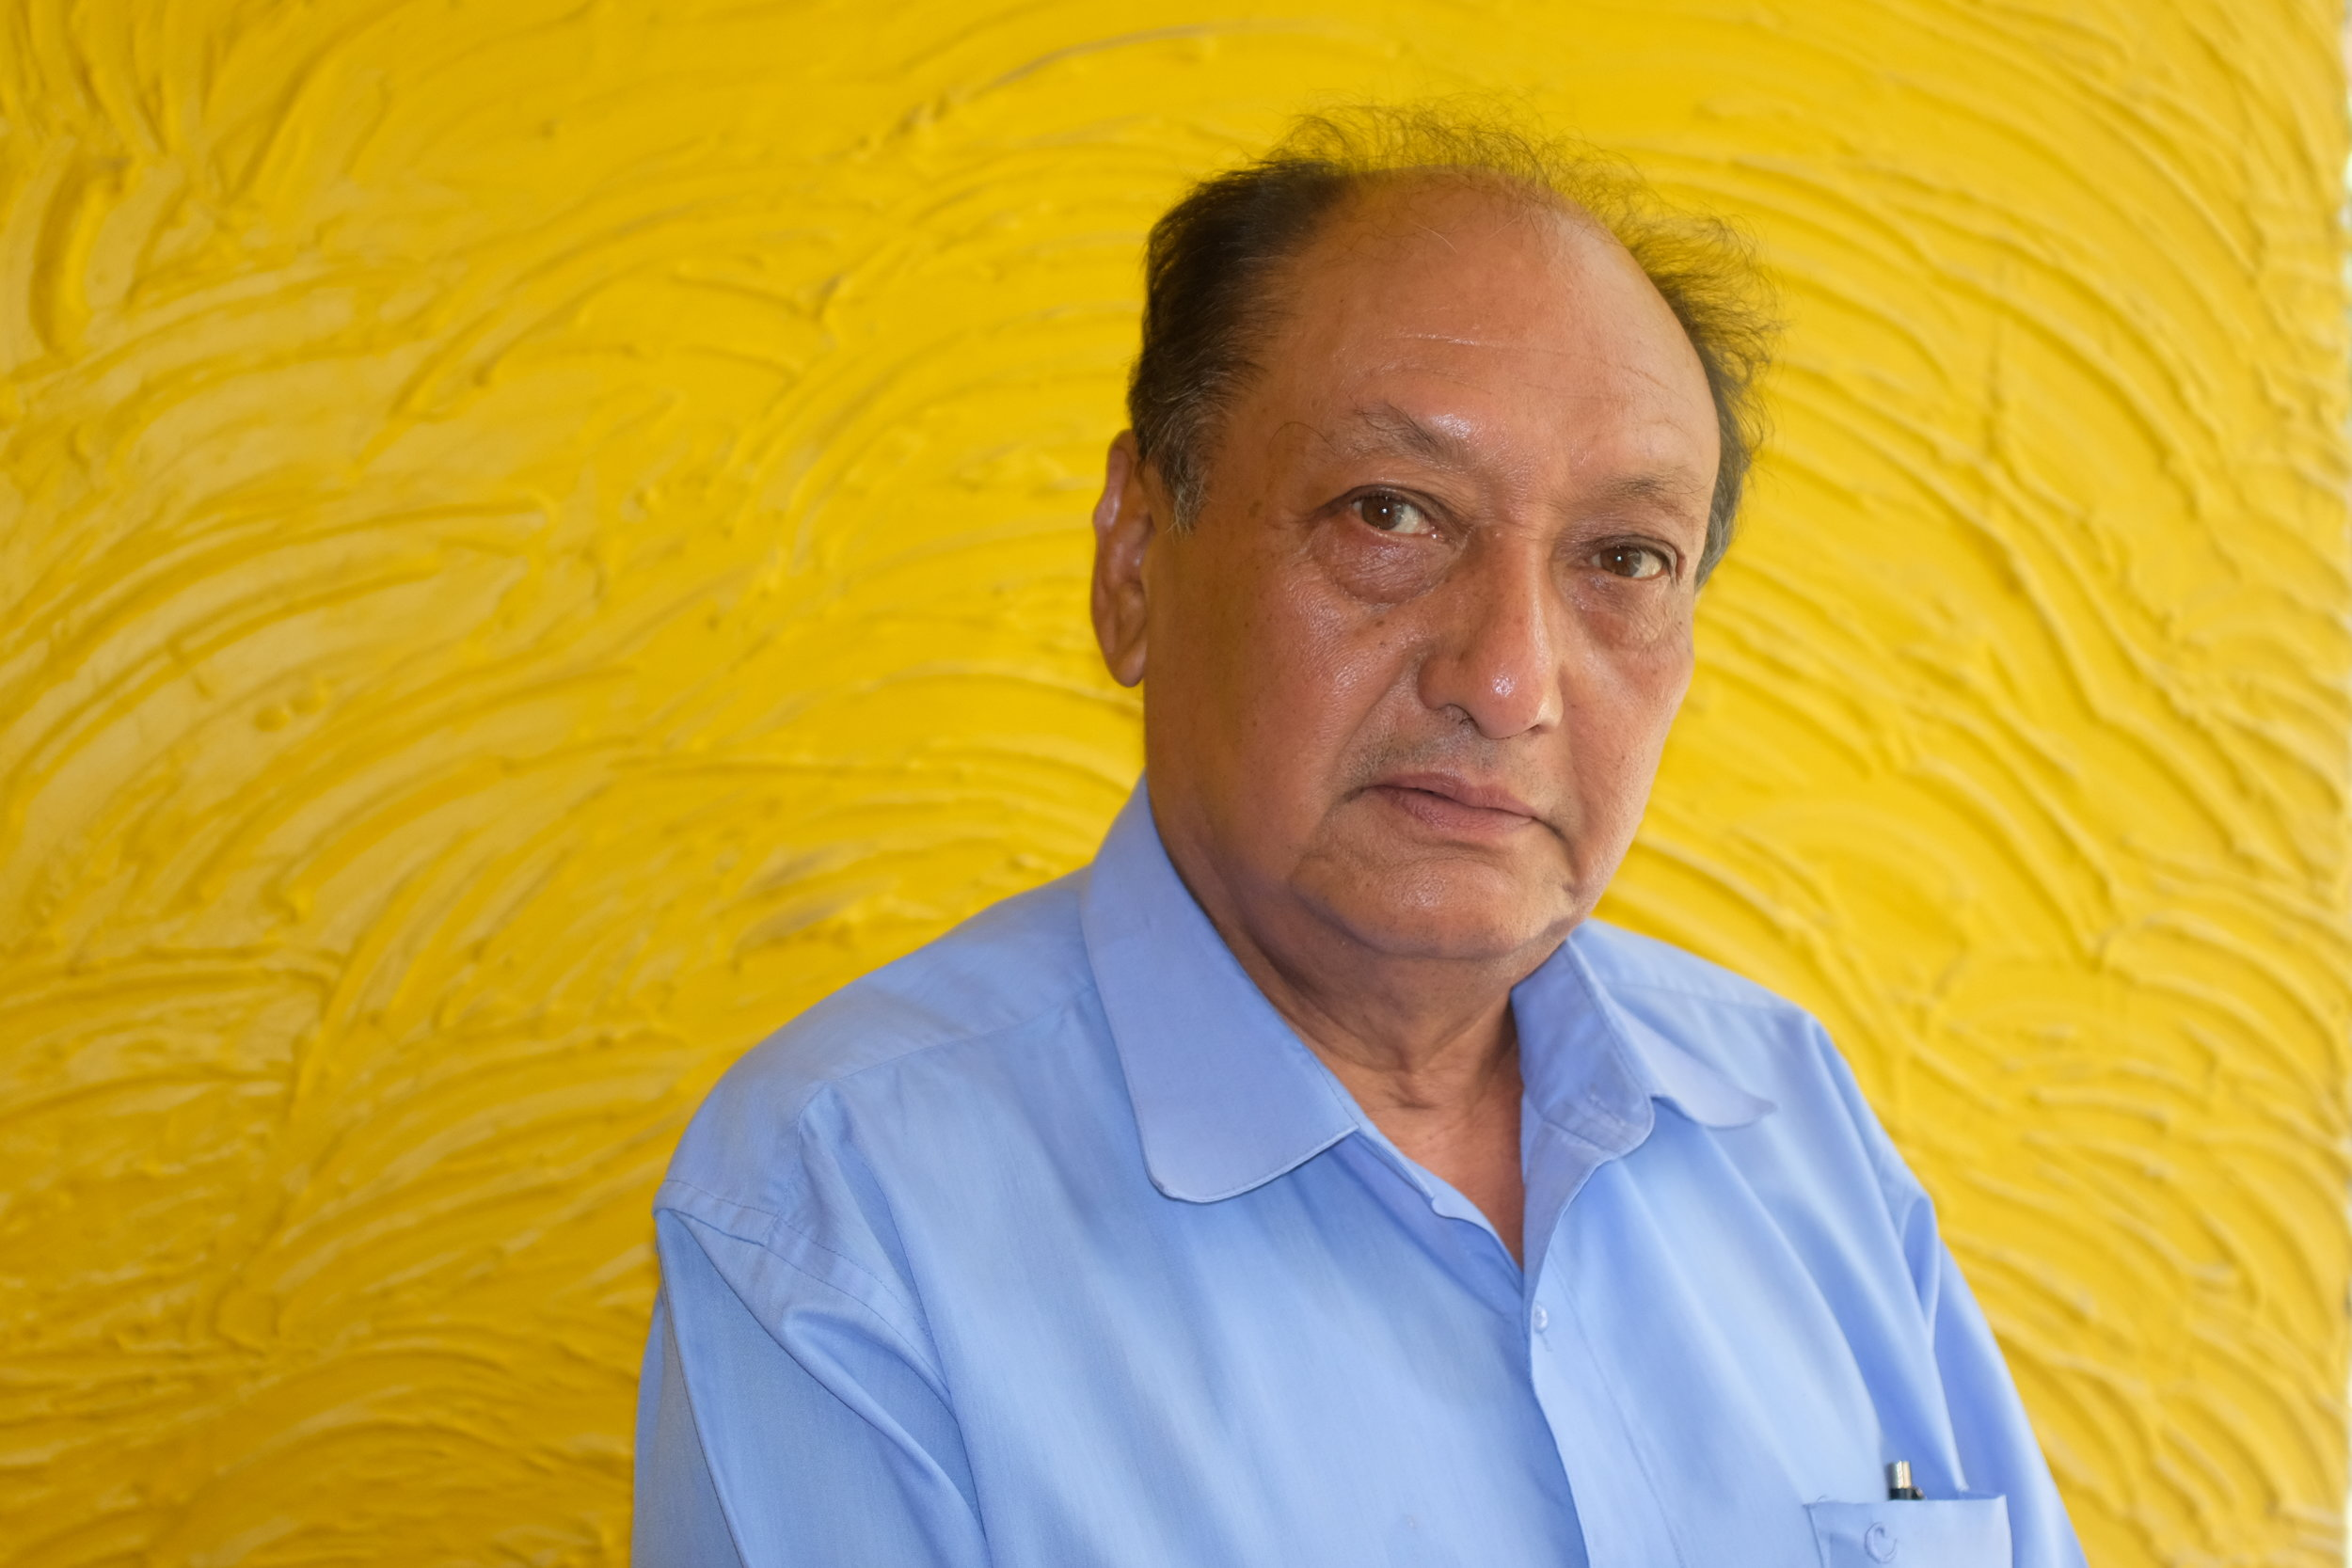 Mr. Sharad Babu Shrestha